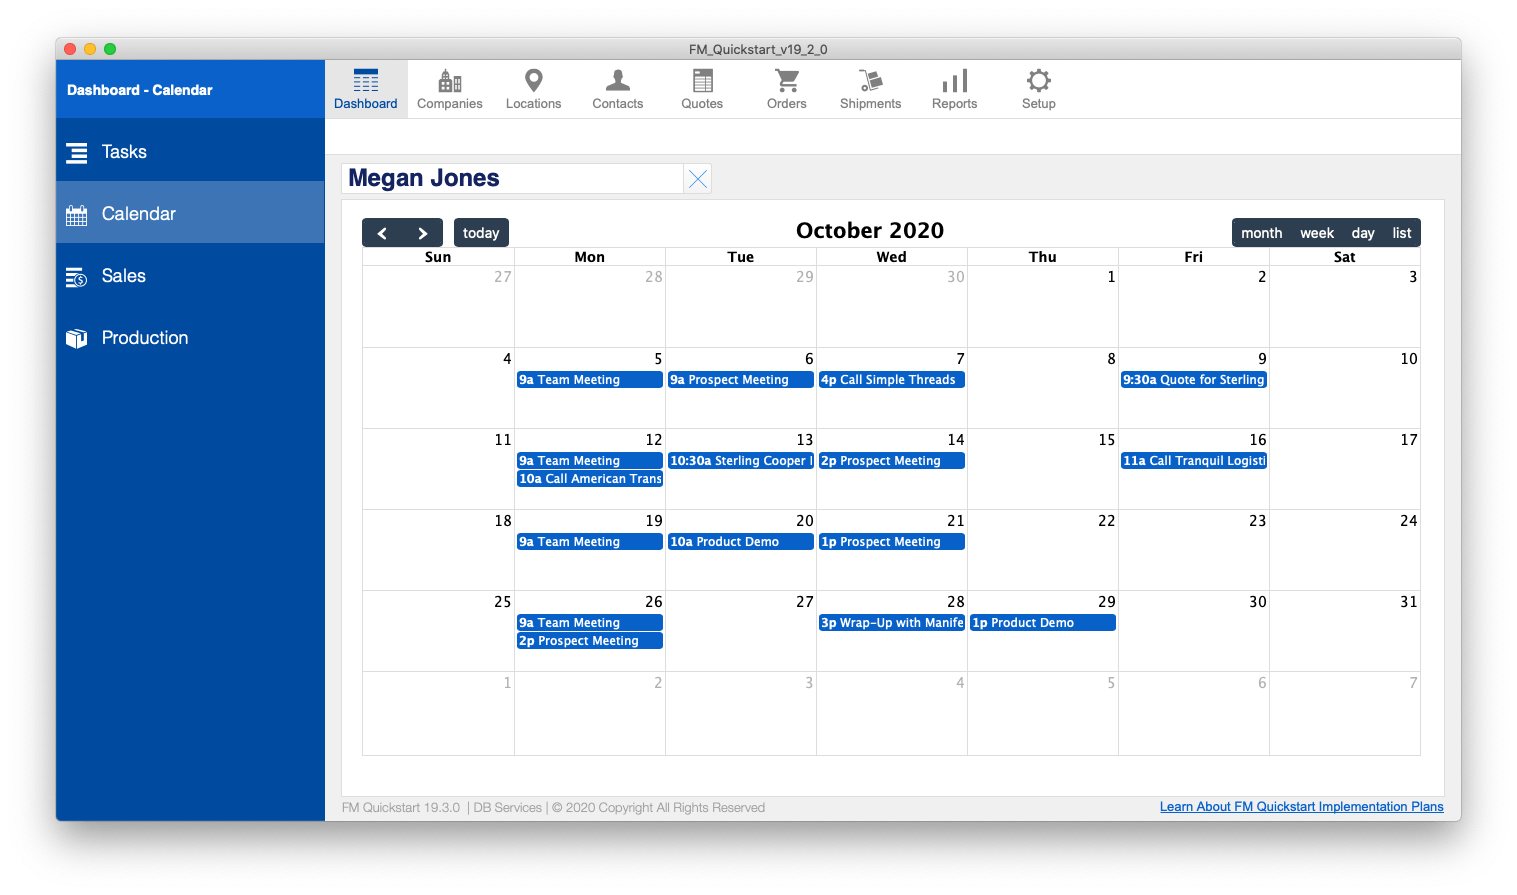 FM Quickstart Calendar screenshot